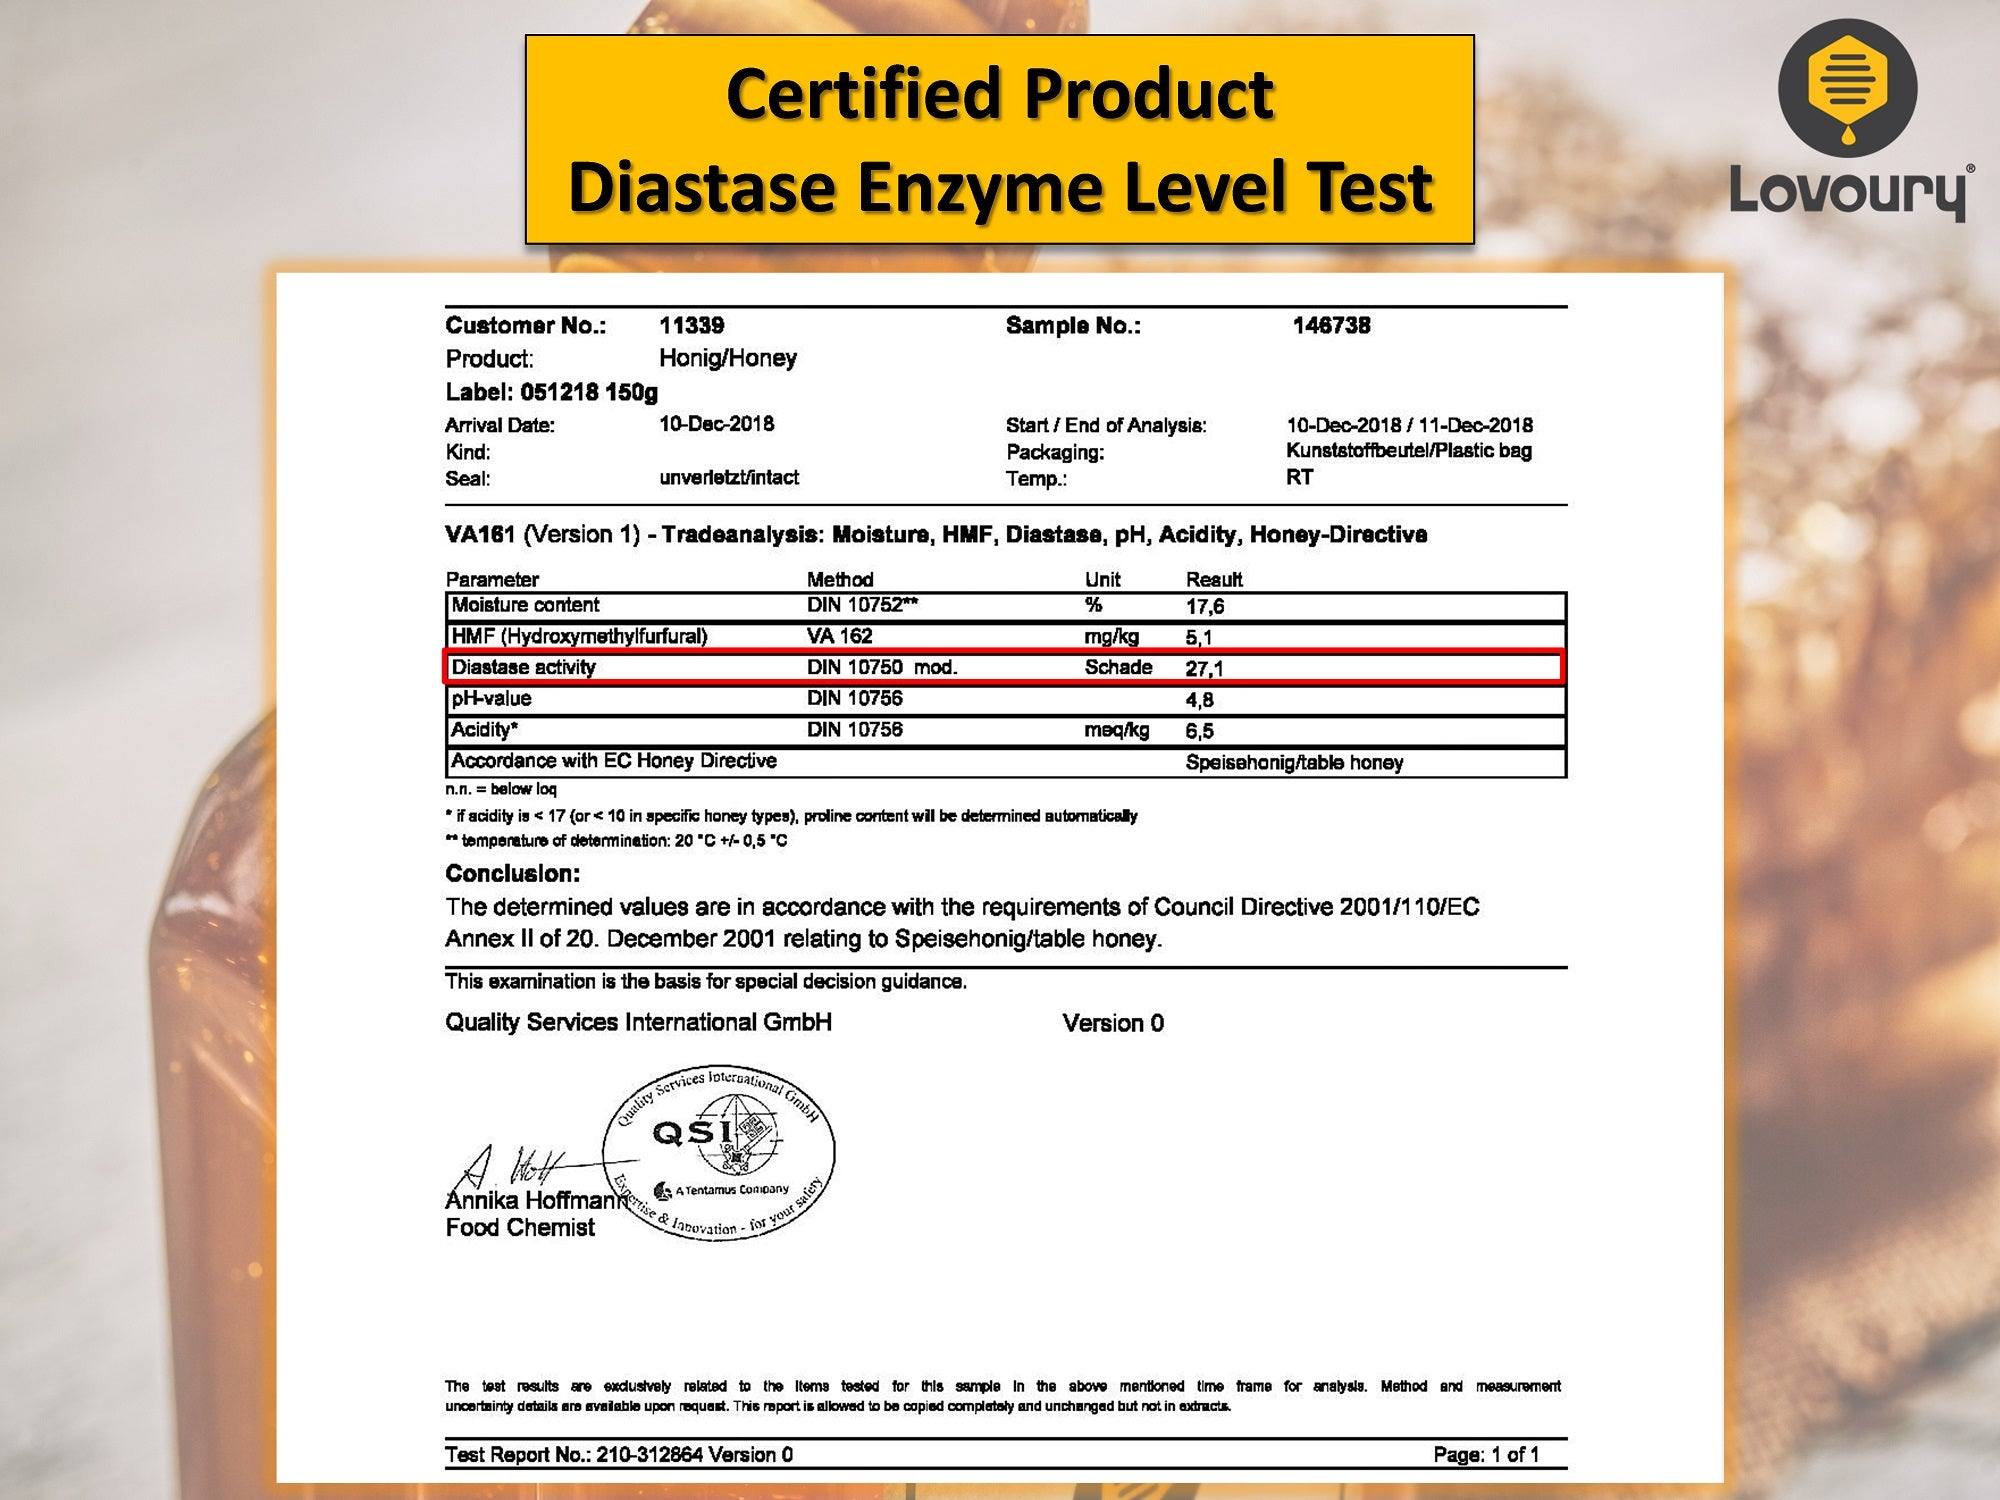 Certification Diastase Enzyme Activity Level